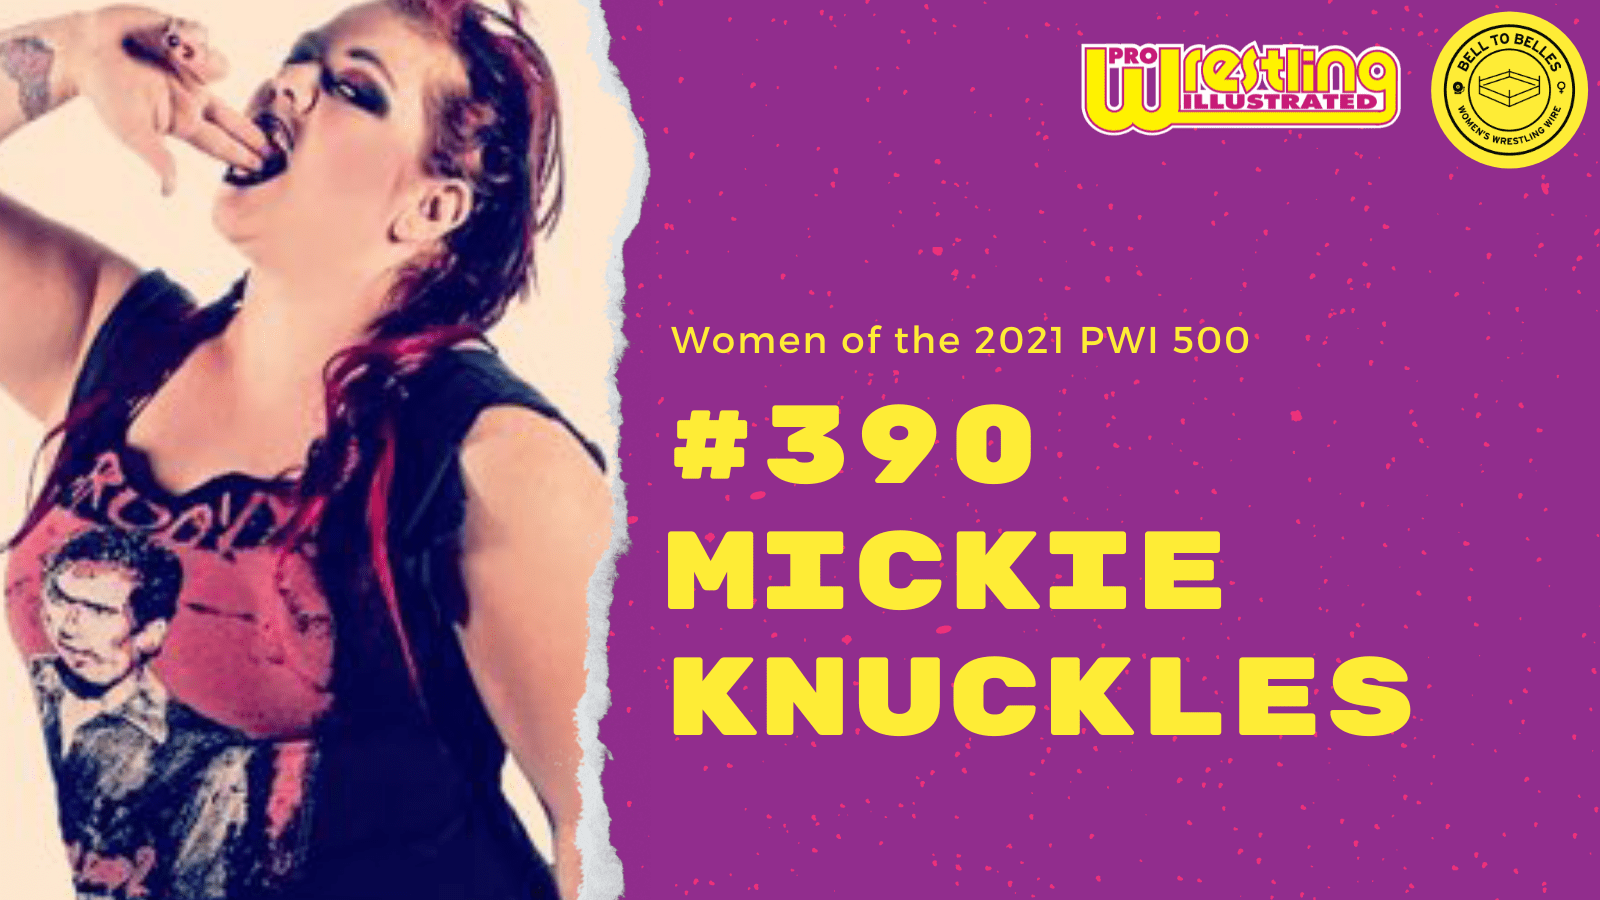 Women of the 2021 PWI 500: #390 Mickie Knuckles